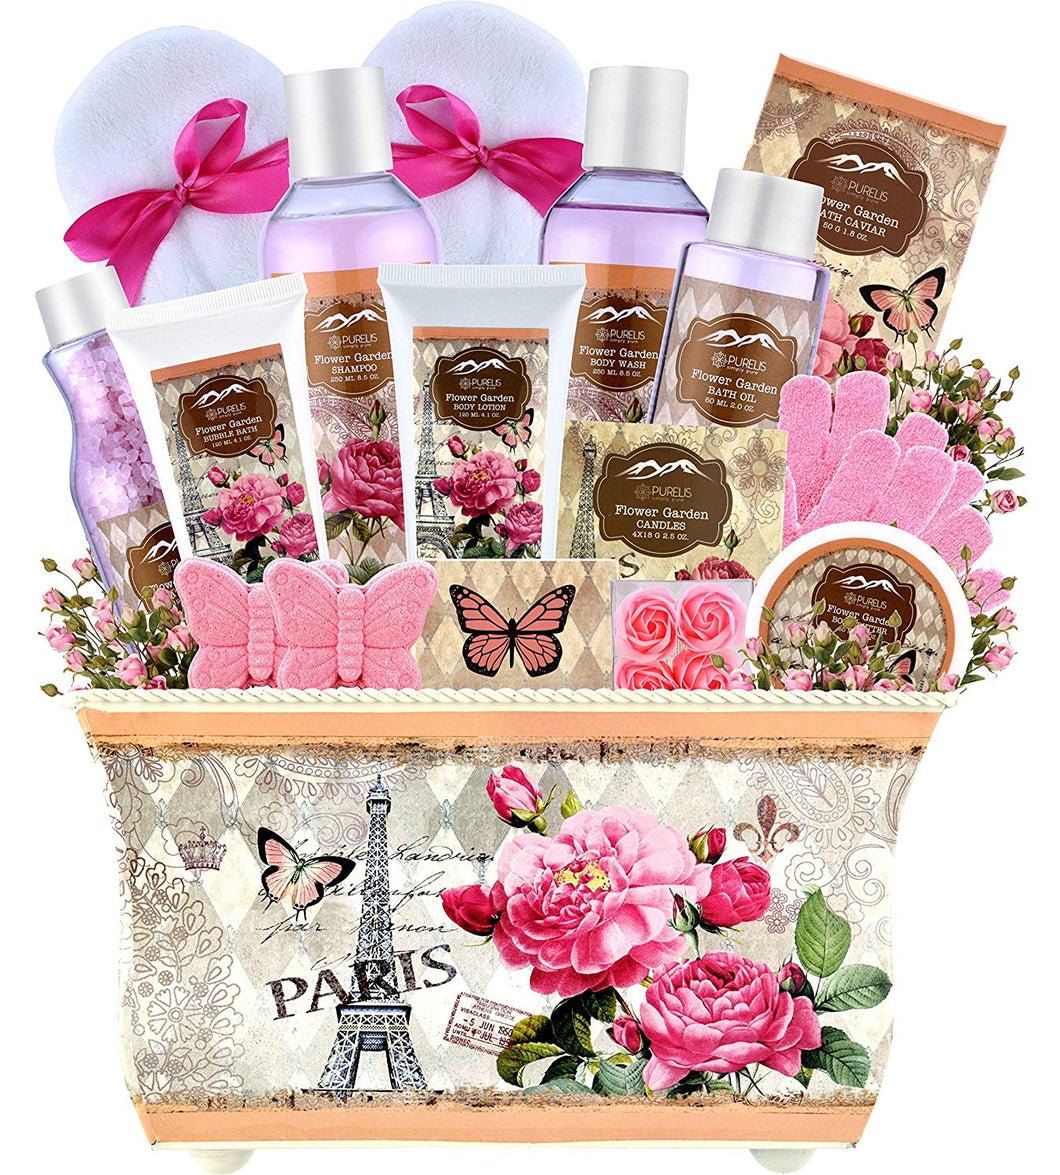 Spa Gift Baskets for Women - Deluxe Bath Basket Spa Set Gardener Gift Baskets - Womens Spa Bath & Body Works Lotion Set. - ardenorganics.com